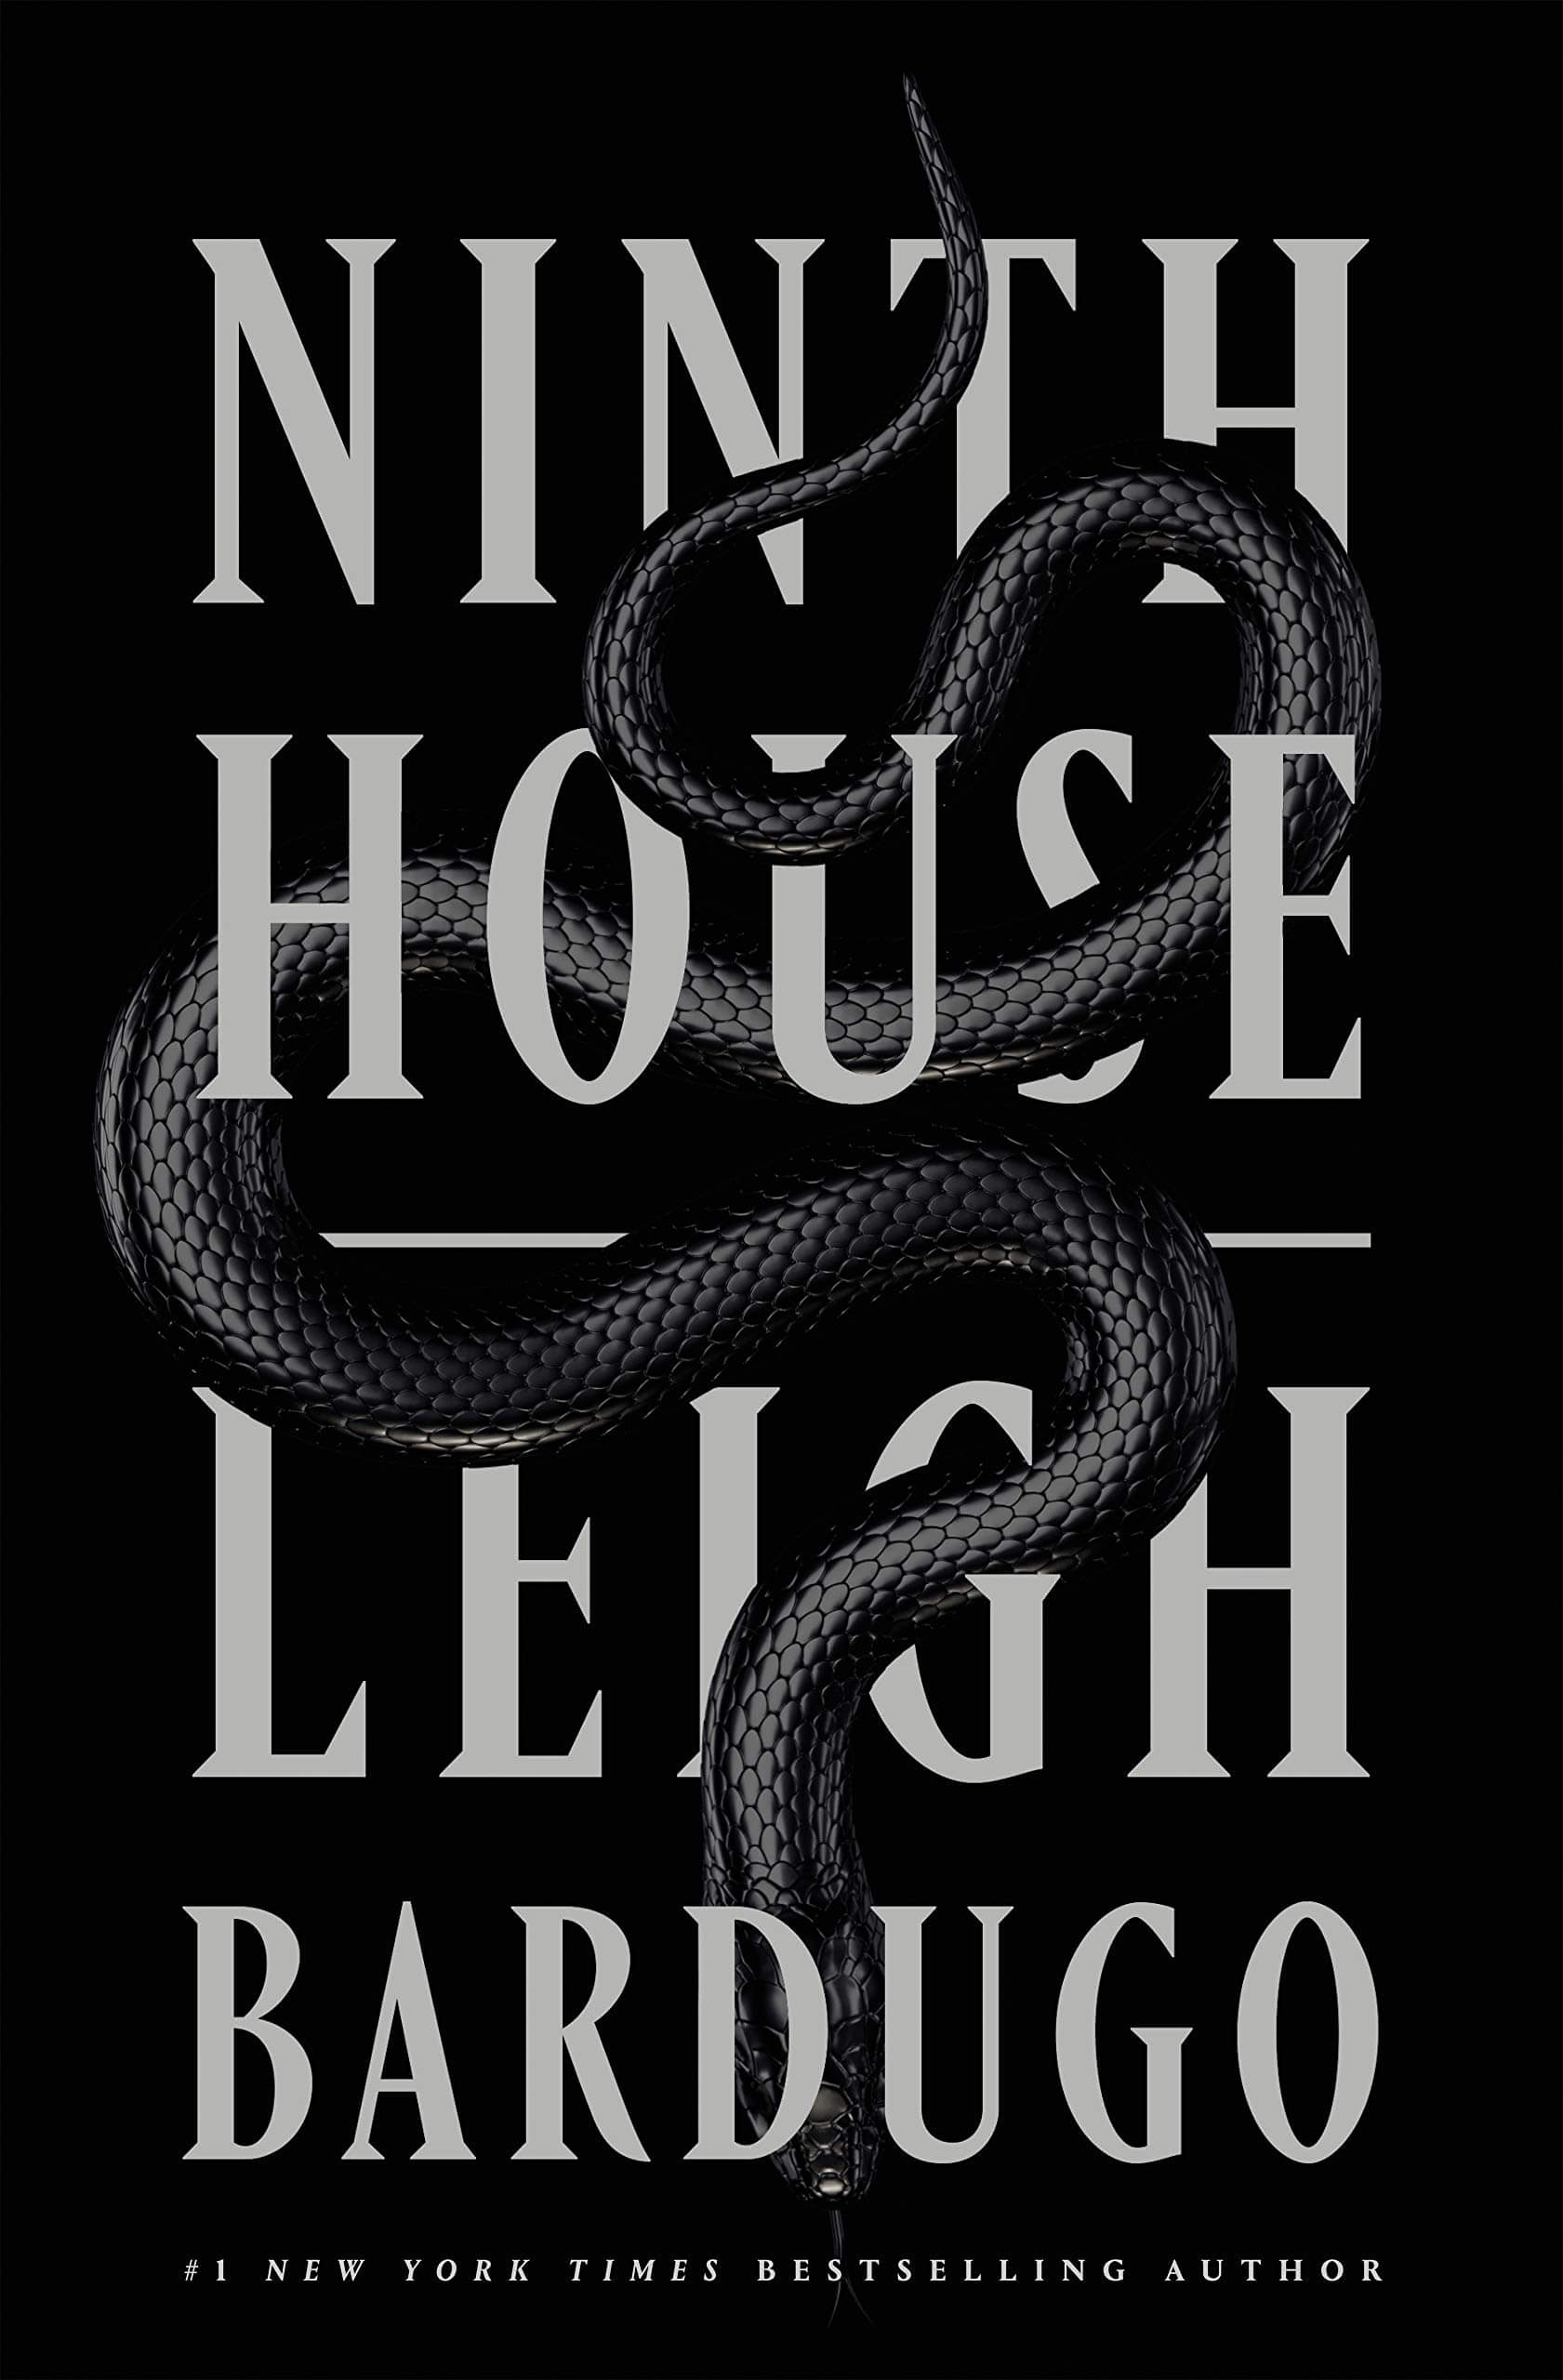 Ninth House book cover image